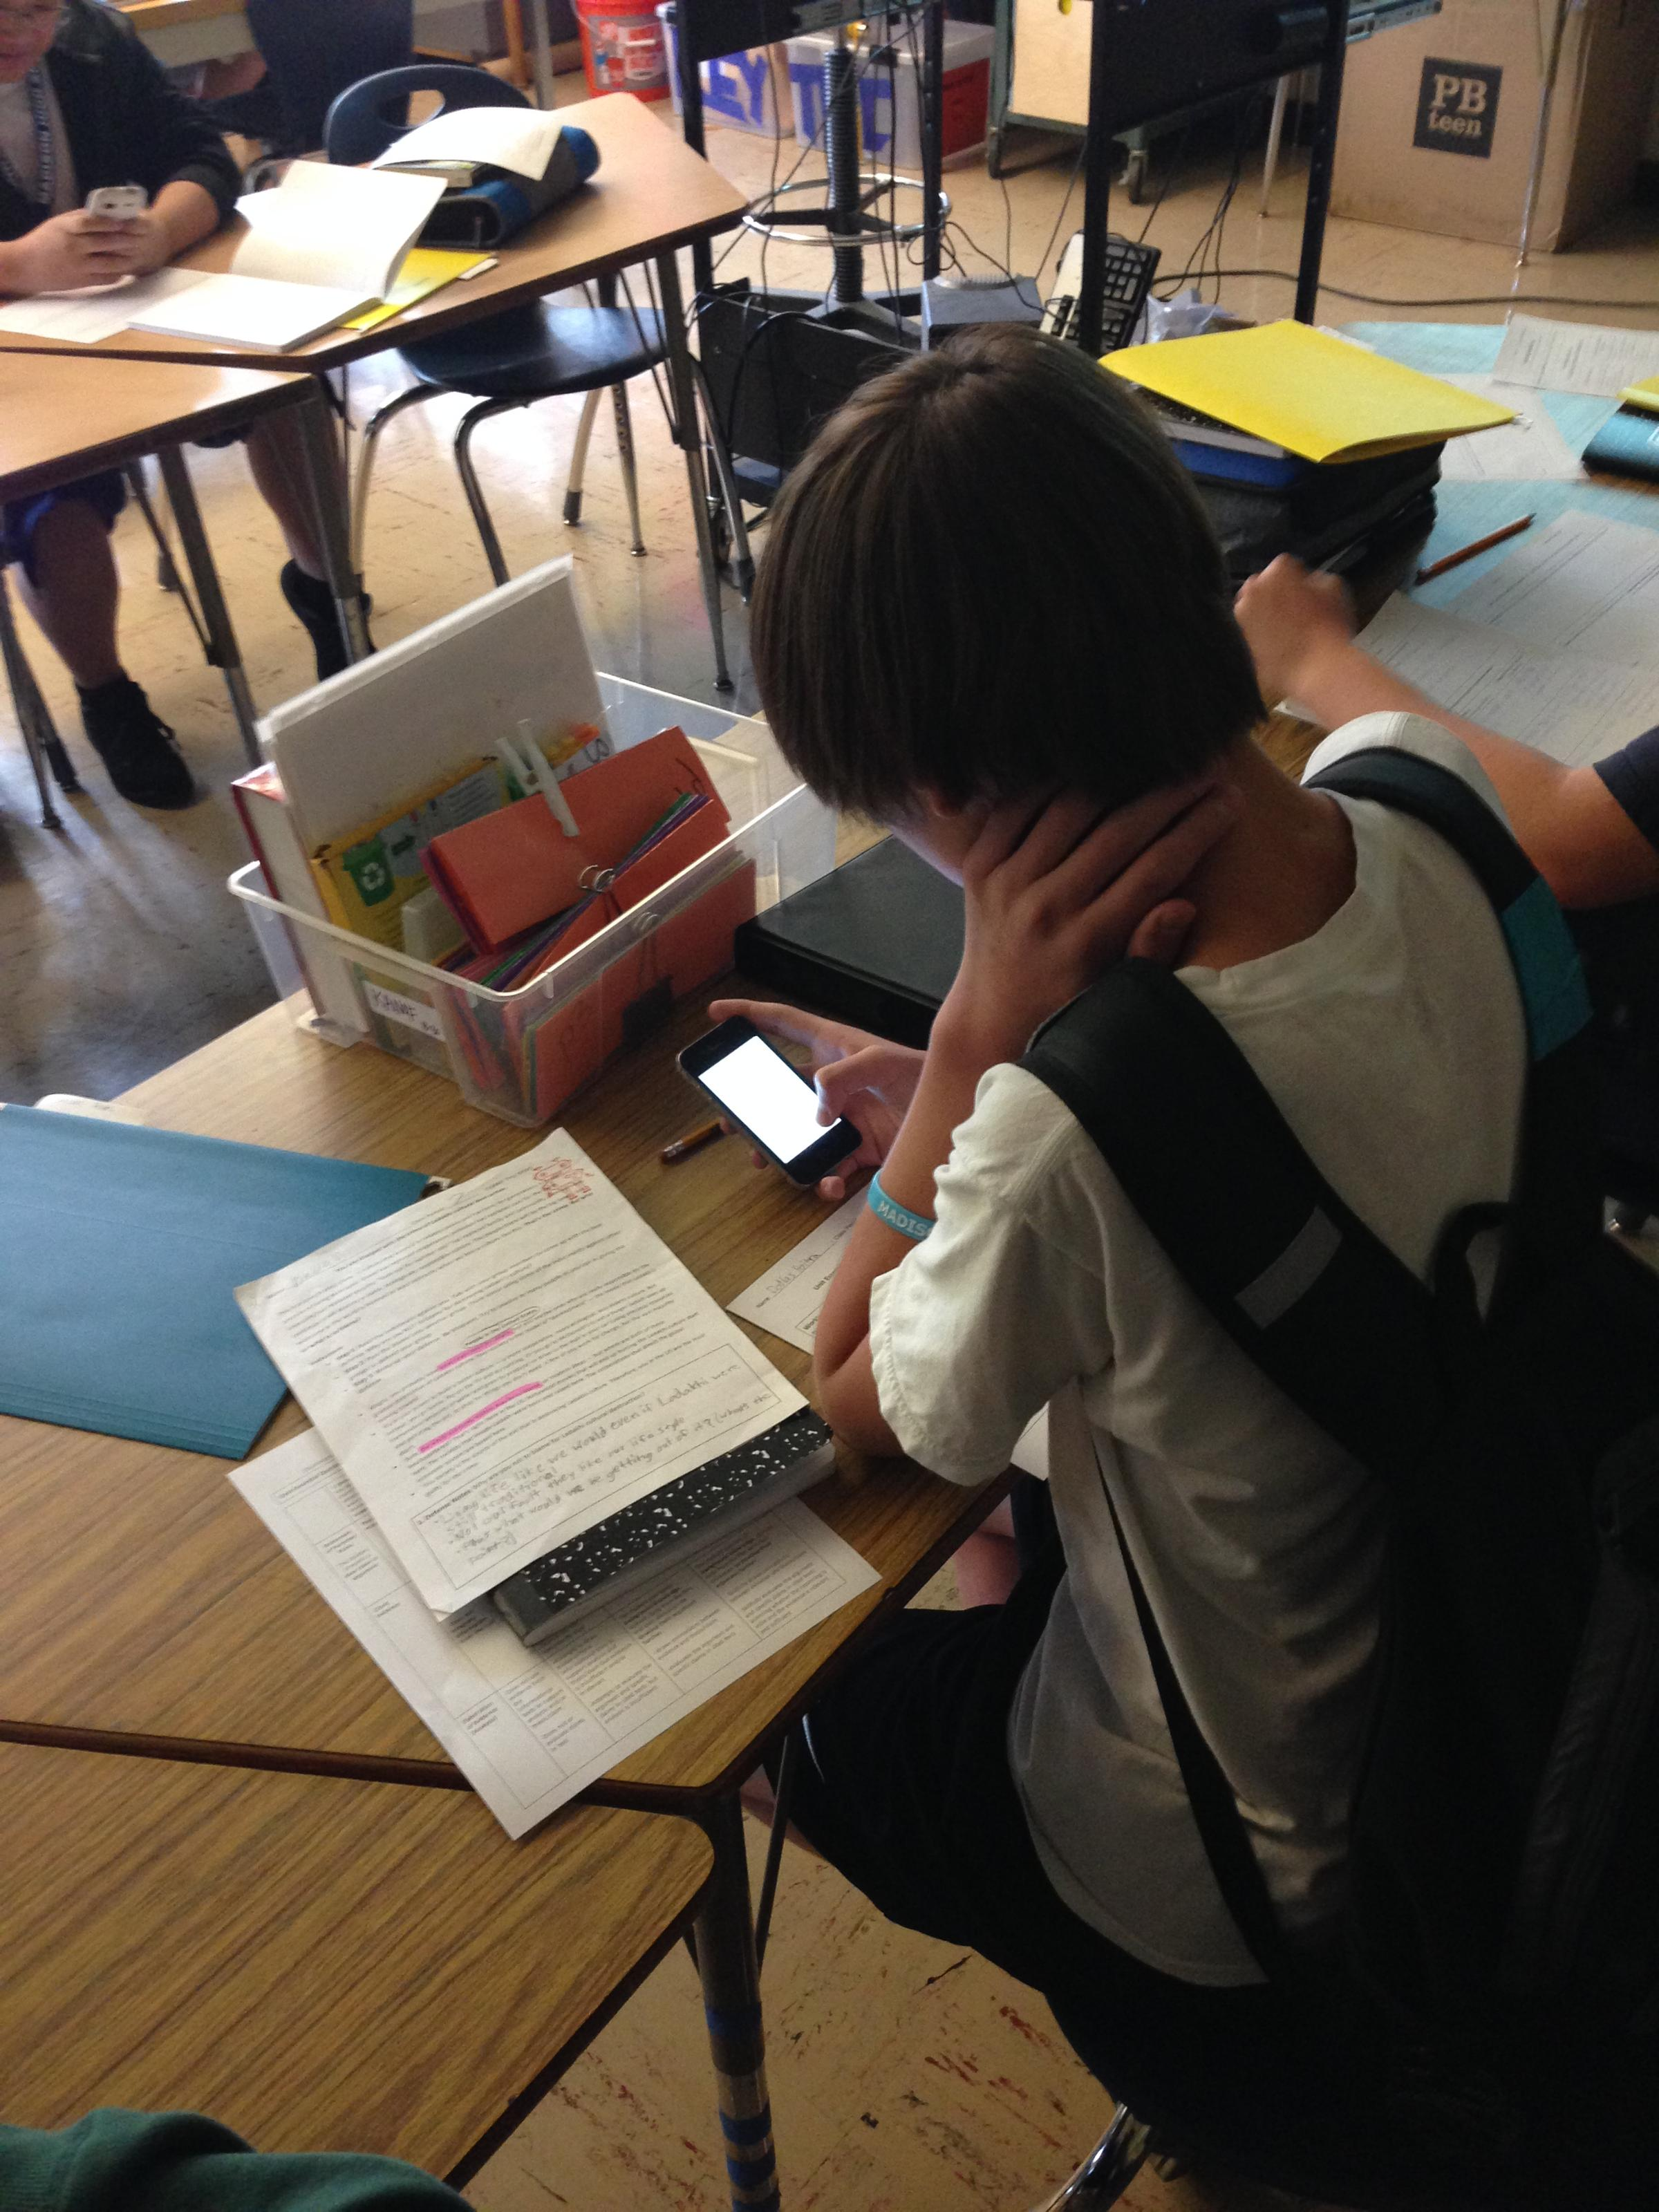 use your cell phone in class the oregon department of education students at portland madison high school use a social networking service called celly to text their teacher thesis statements for a social studies essay